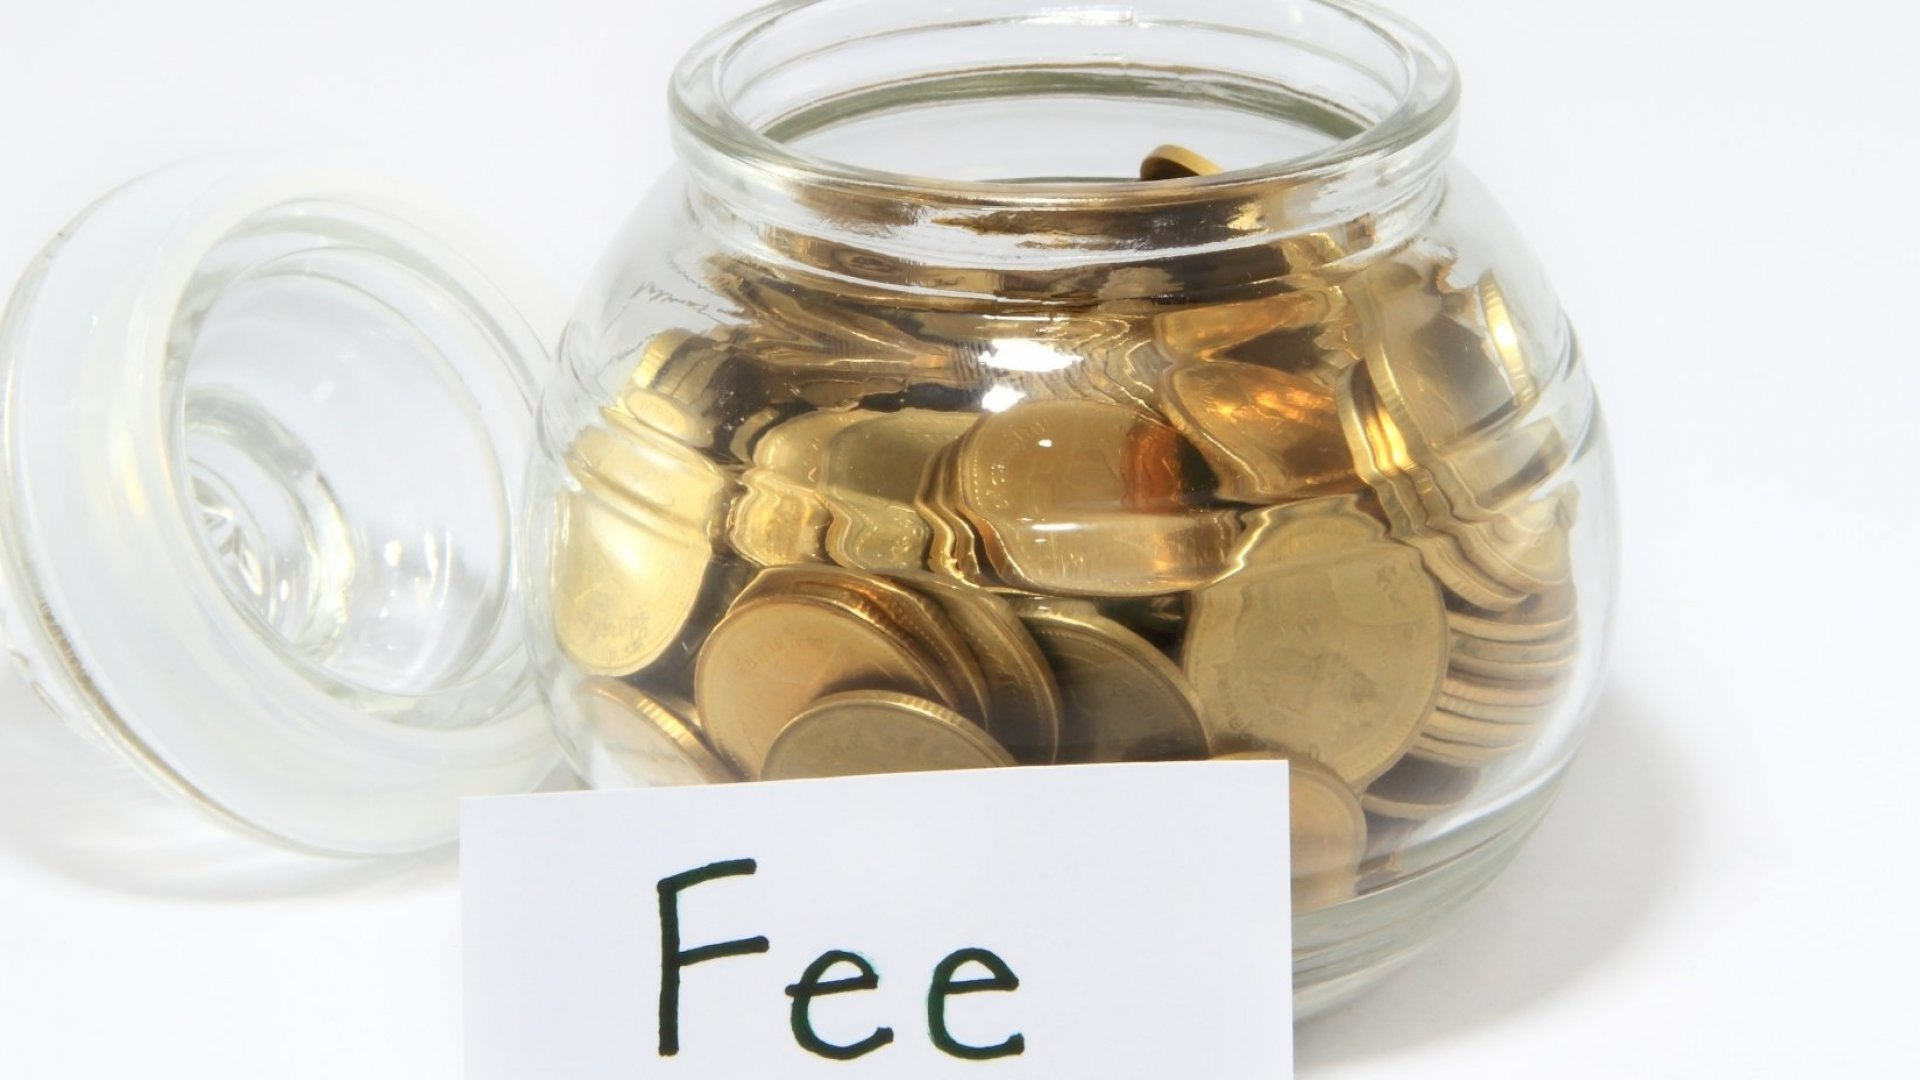 Do you know what fees you're paying in your 401(k)?